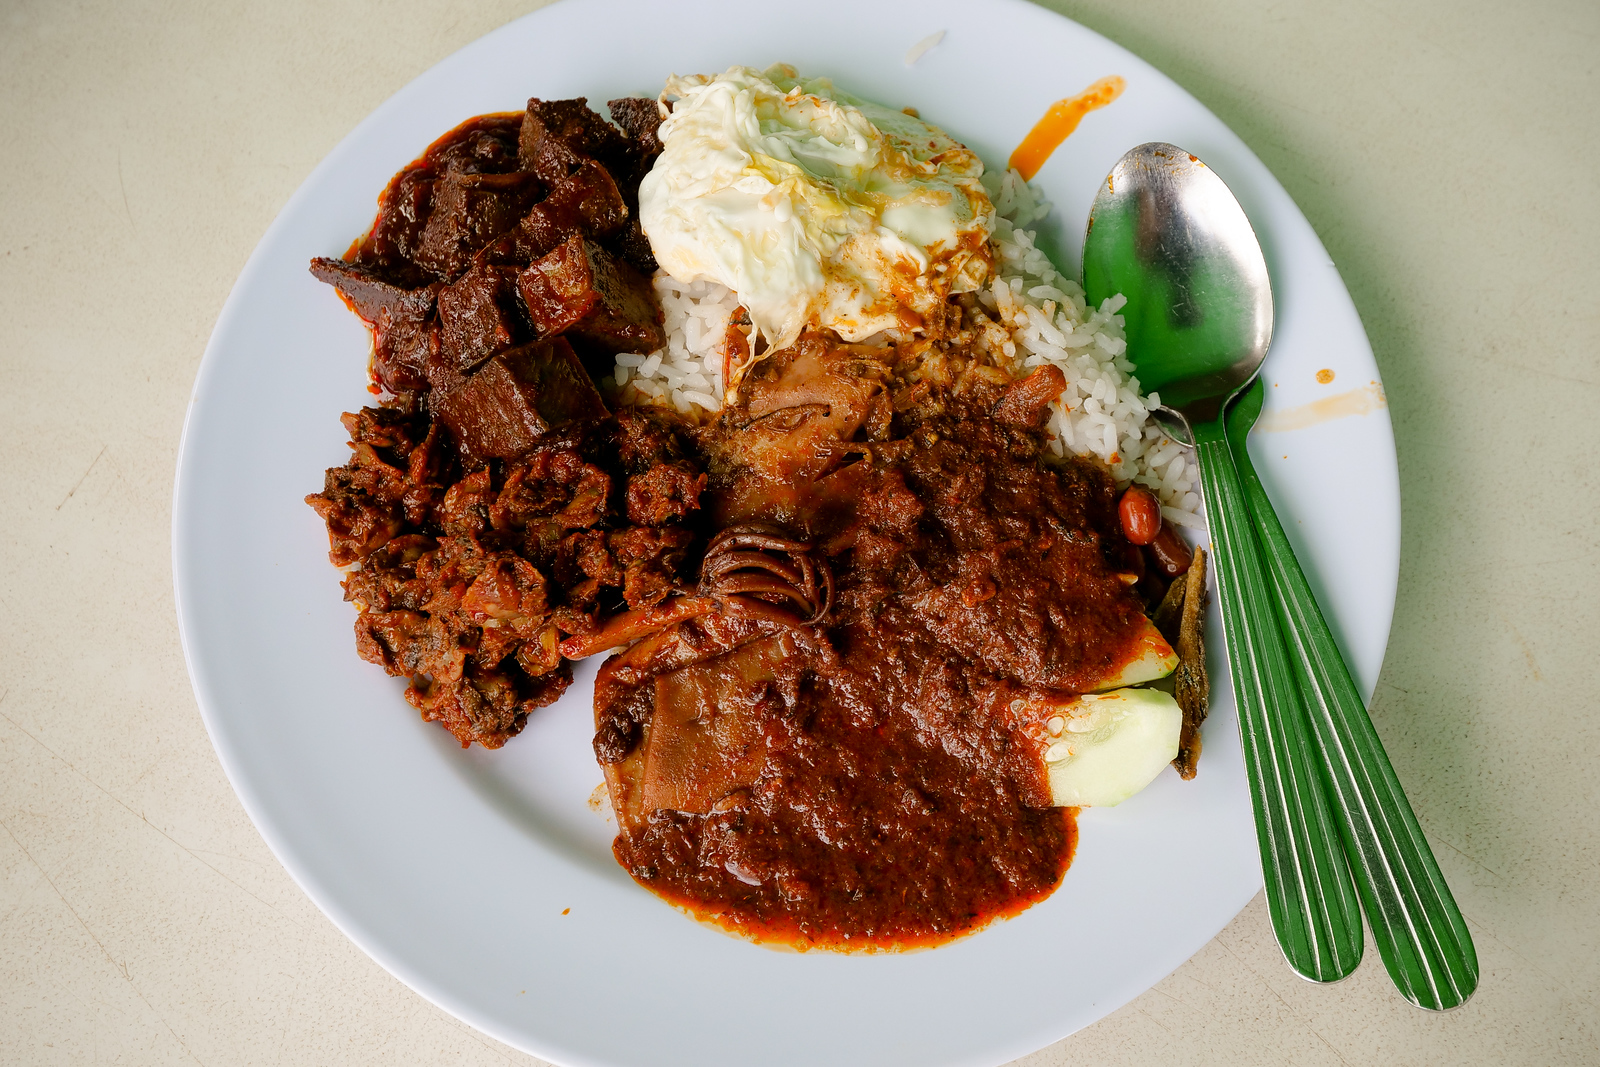 Amazing and delicious plates of Nasi Lemak for early lunch today